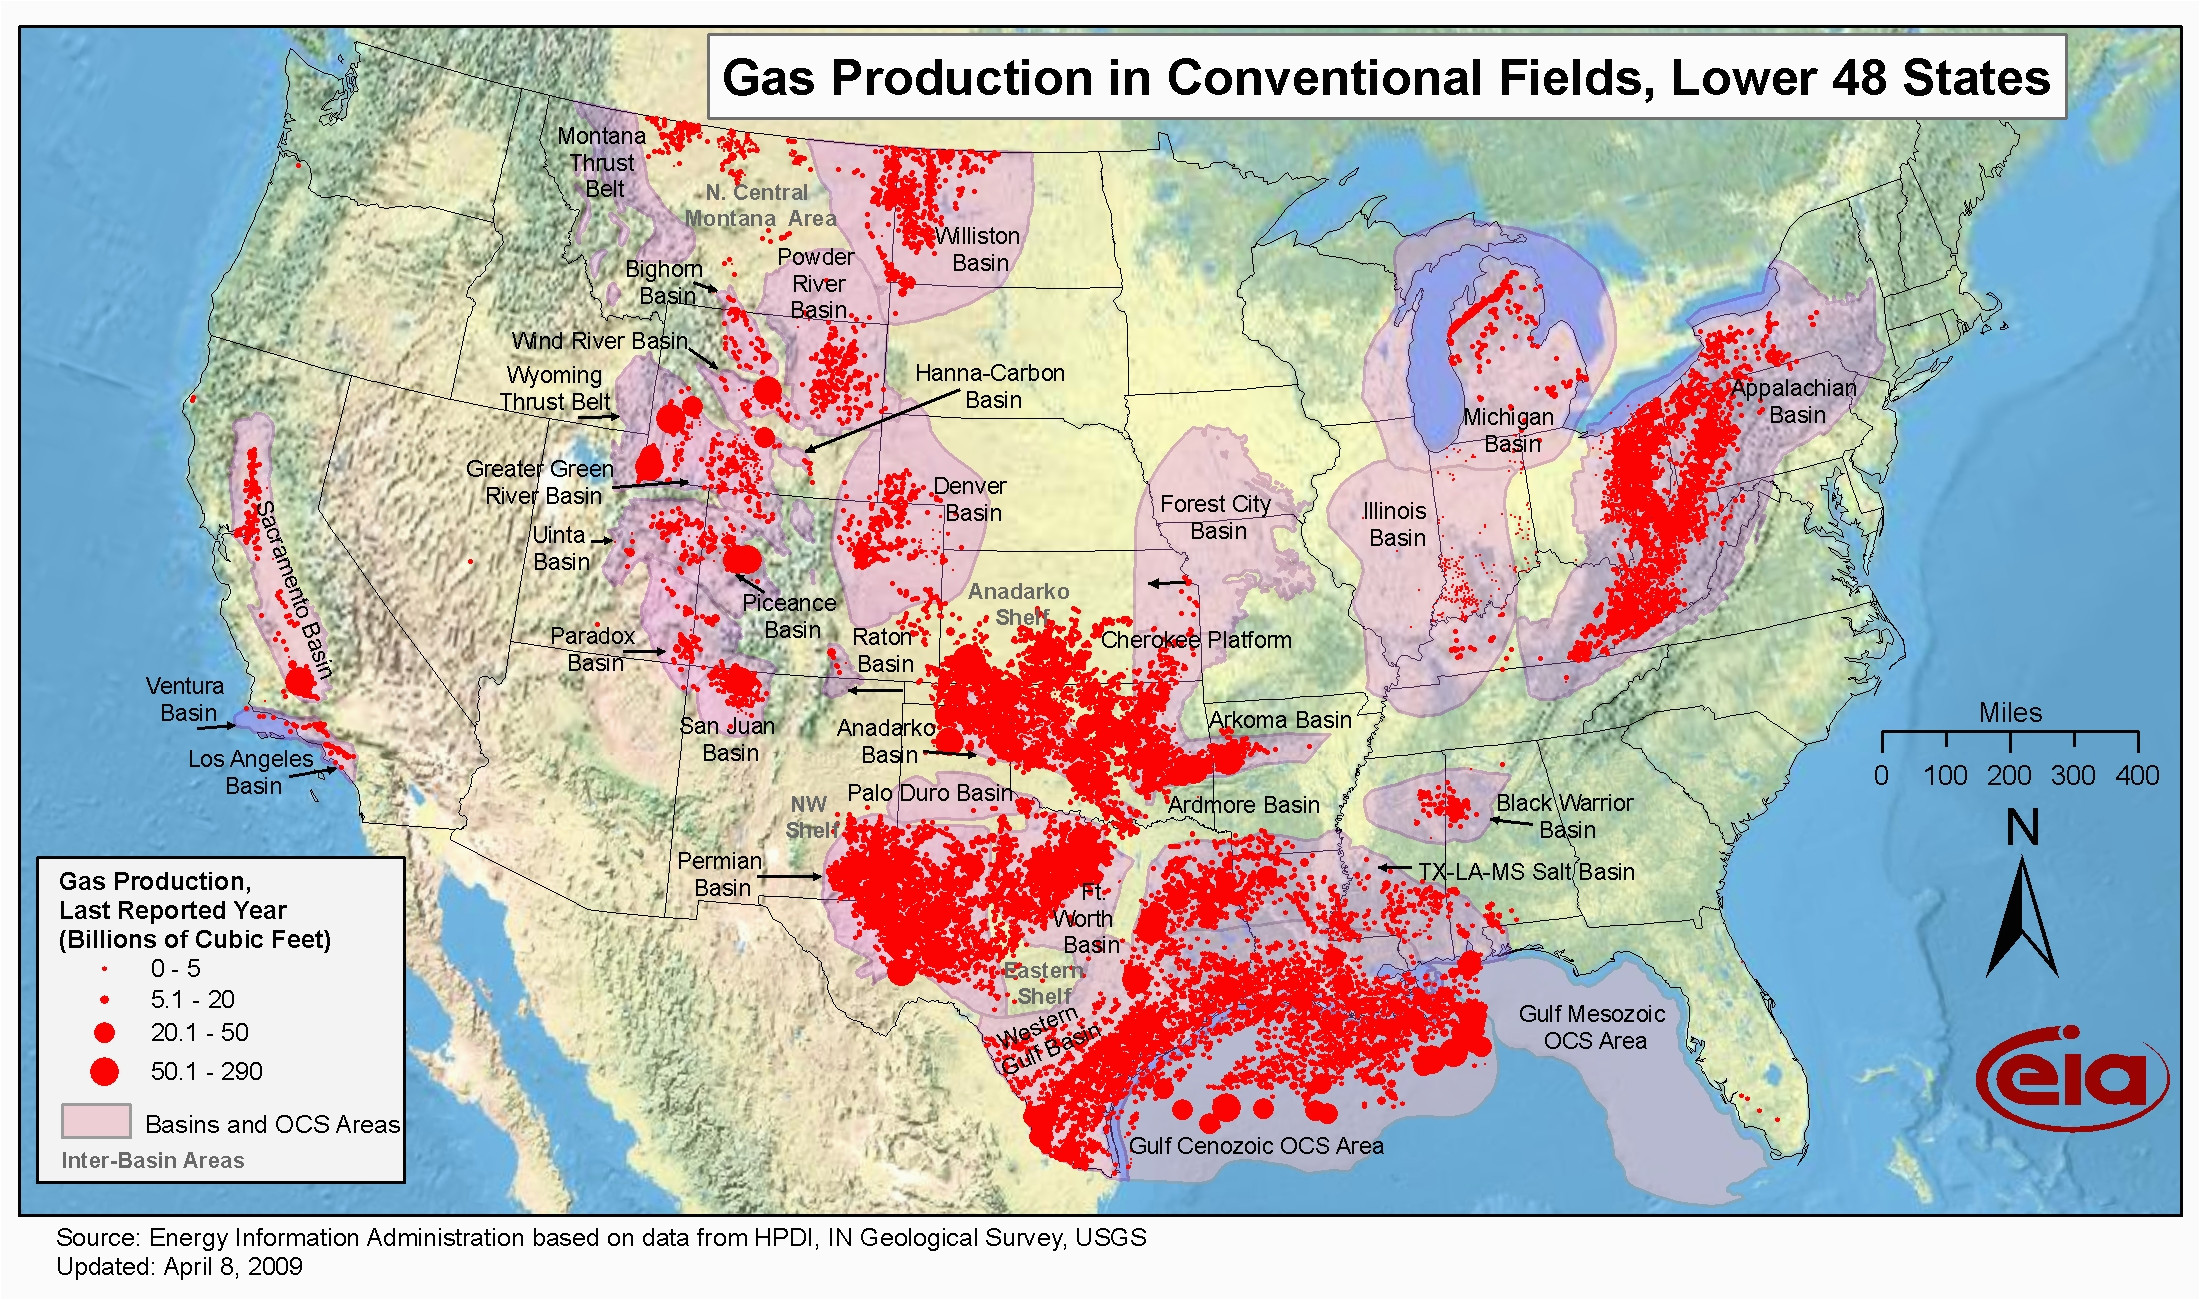 Colorado Oil and Gas Fields Map Oil Fields In Texas Map Business Ideas 2013